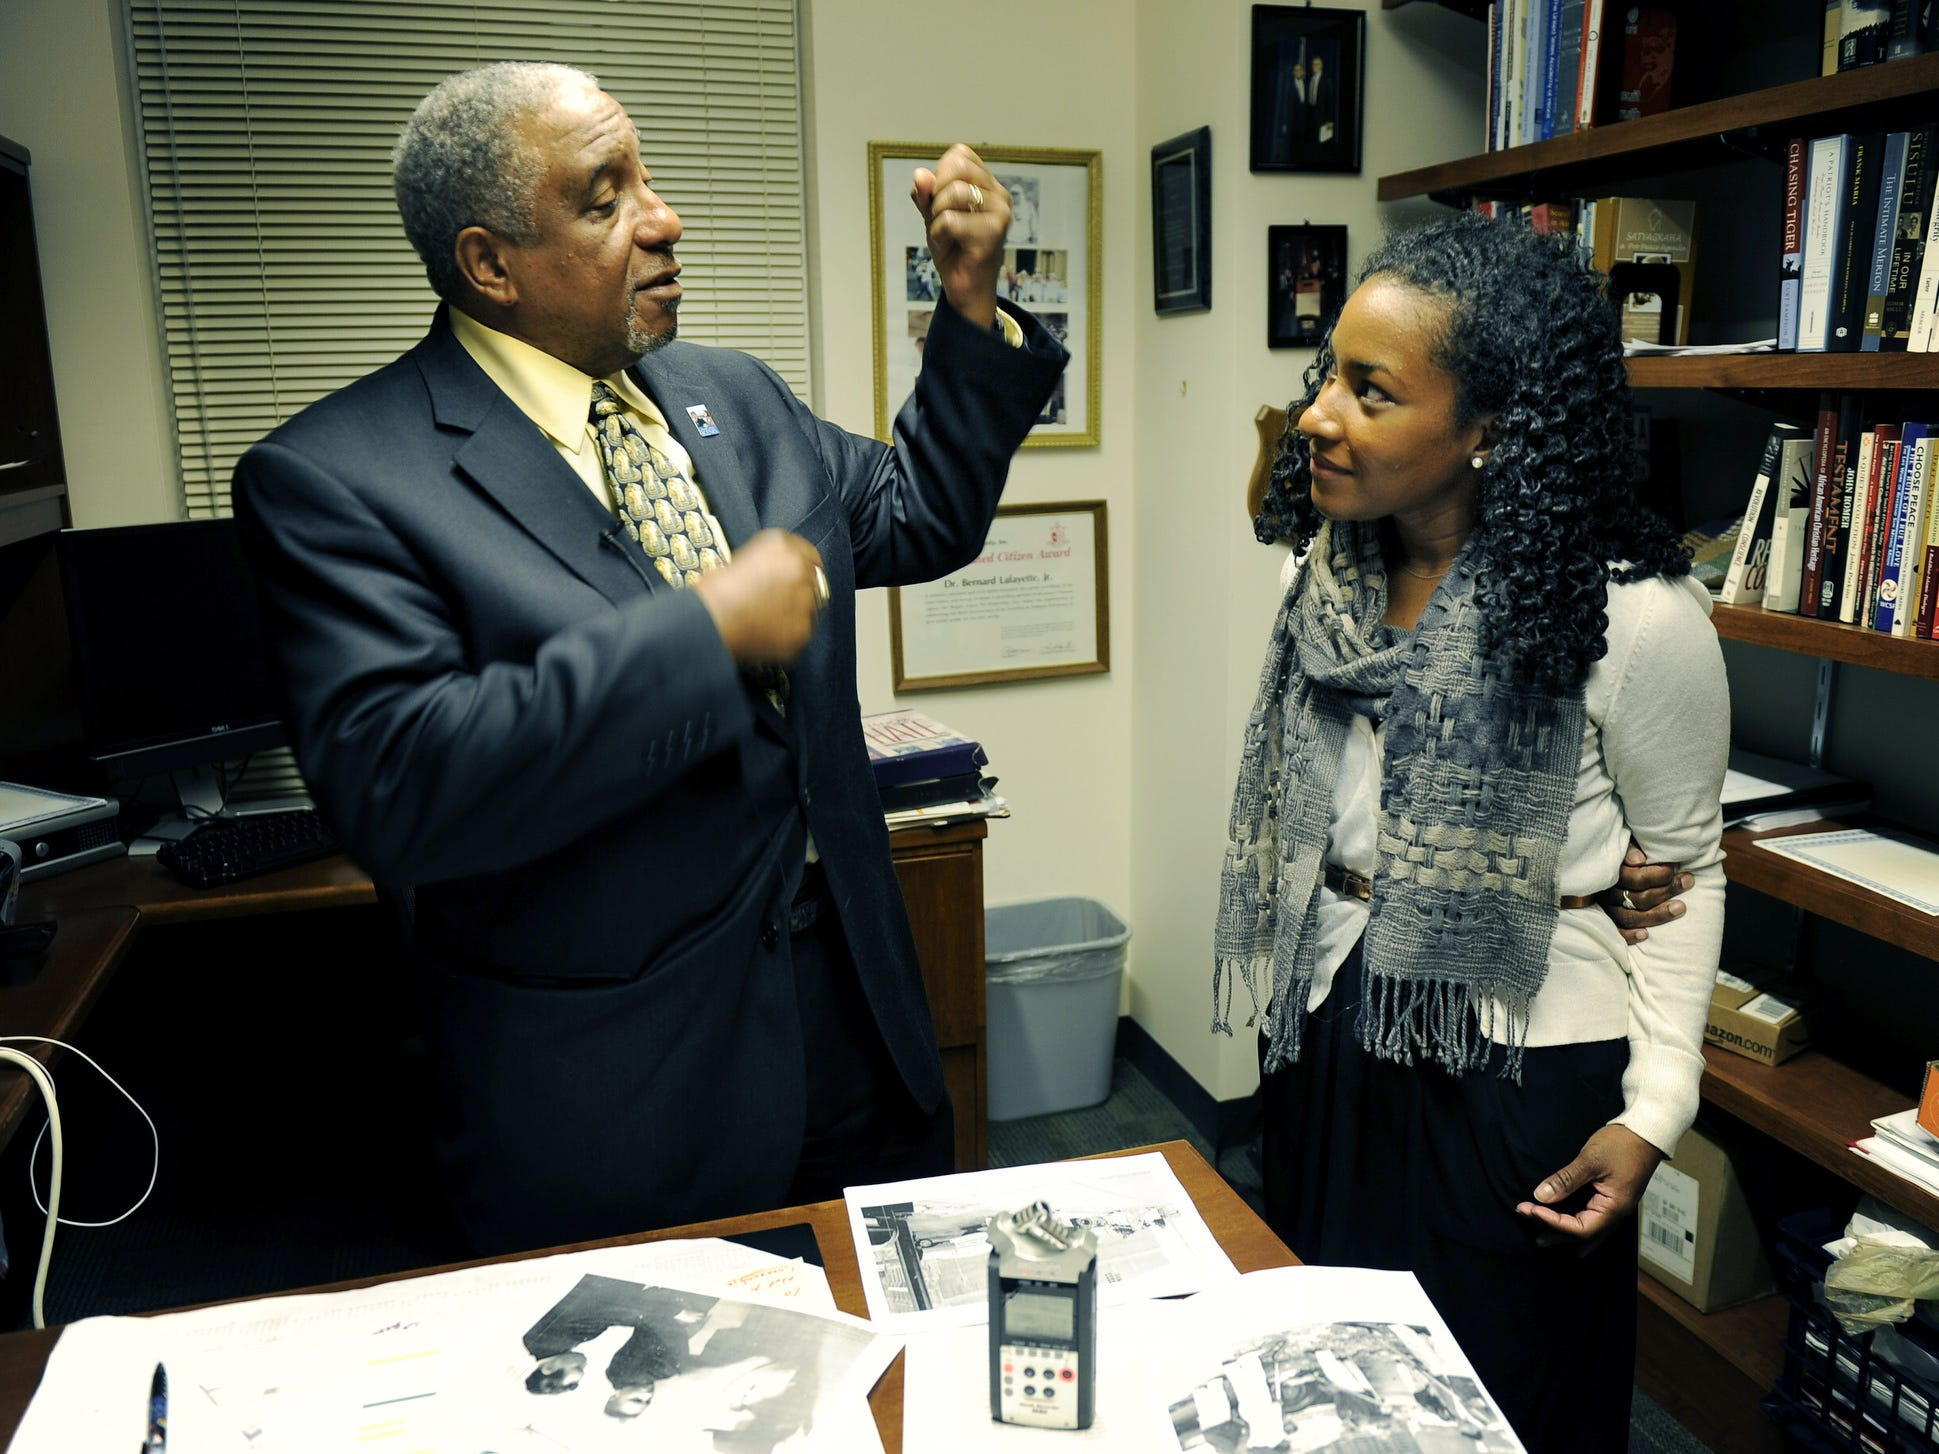 Civil rights activist and organizer Bernard LaFayette, left, talks with Tennessean reporter Jaquetta White during an interview Feb. 5, 2013, in Atlanta.